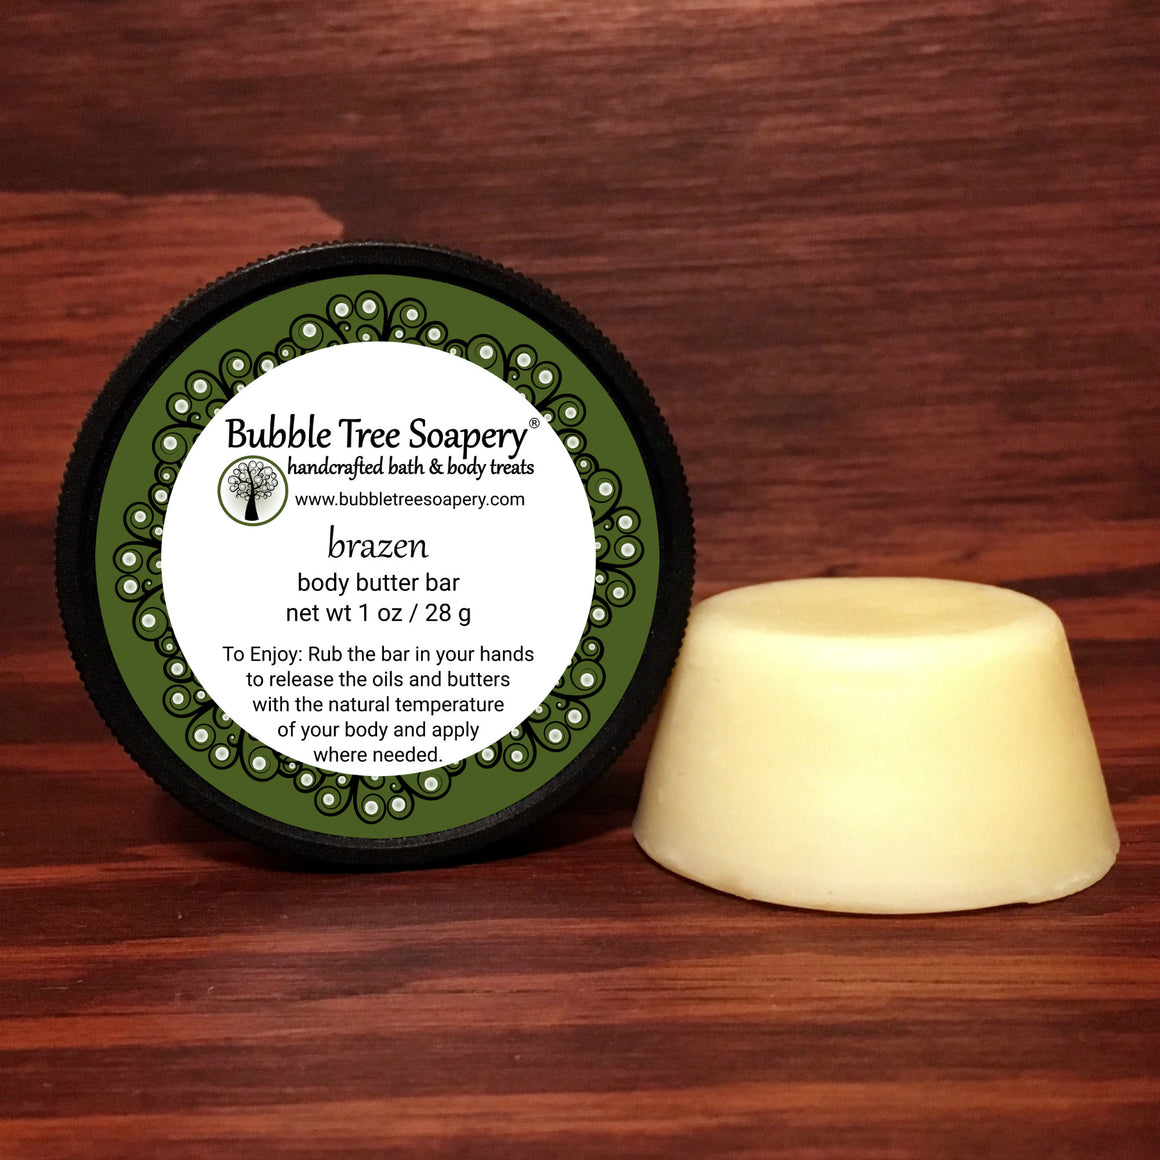 Brazen Body Butter Bar | Bubble Tree Soapery